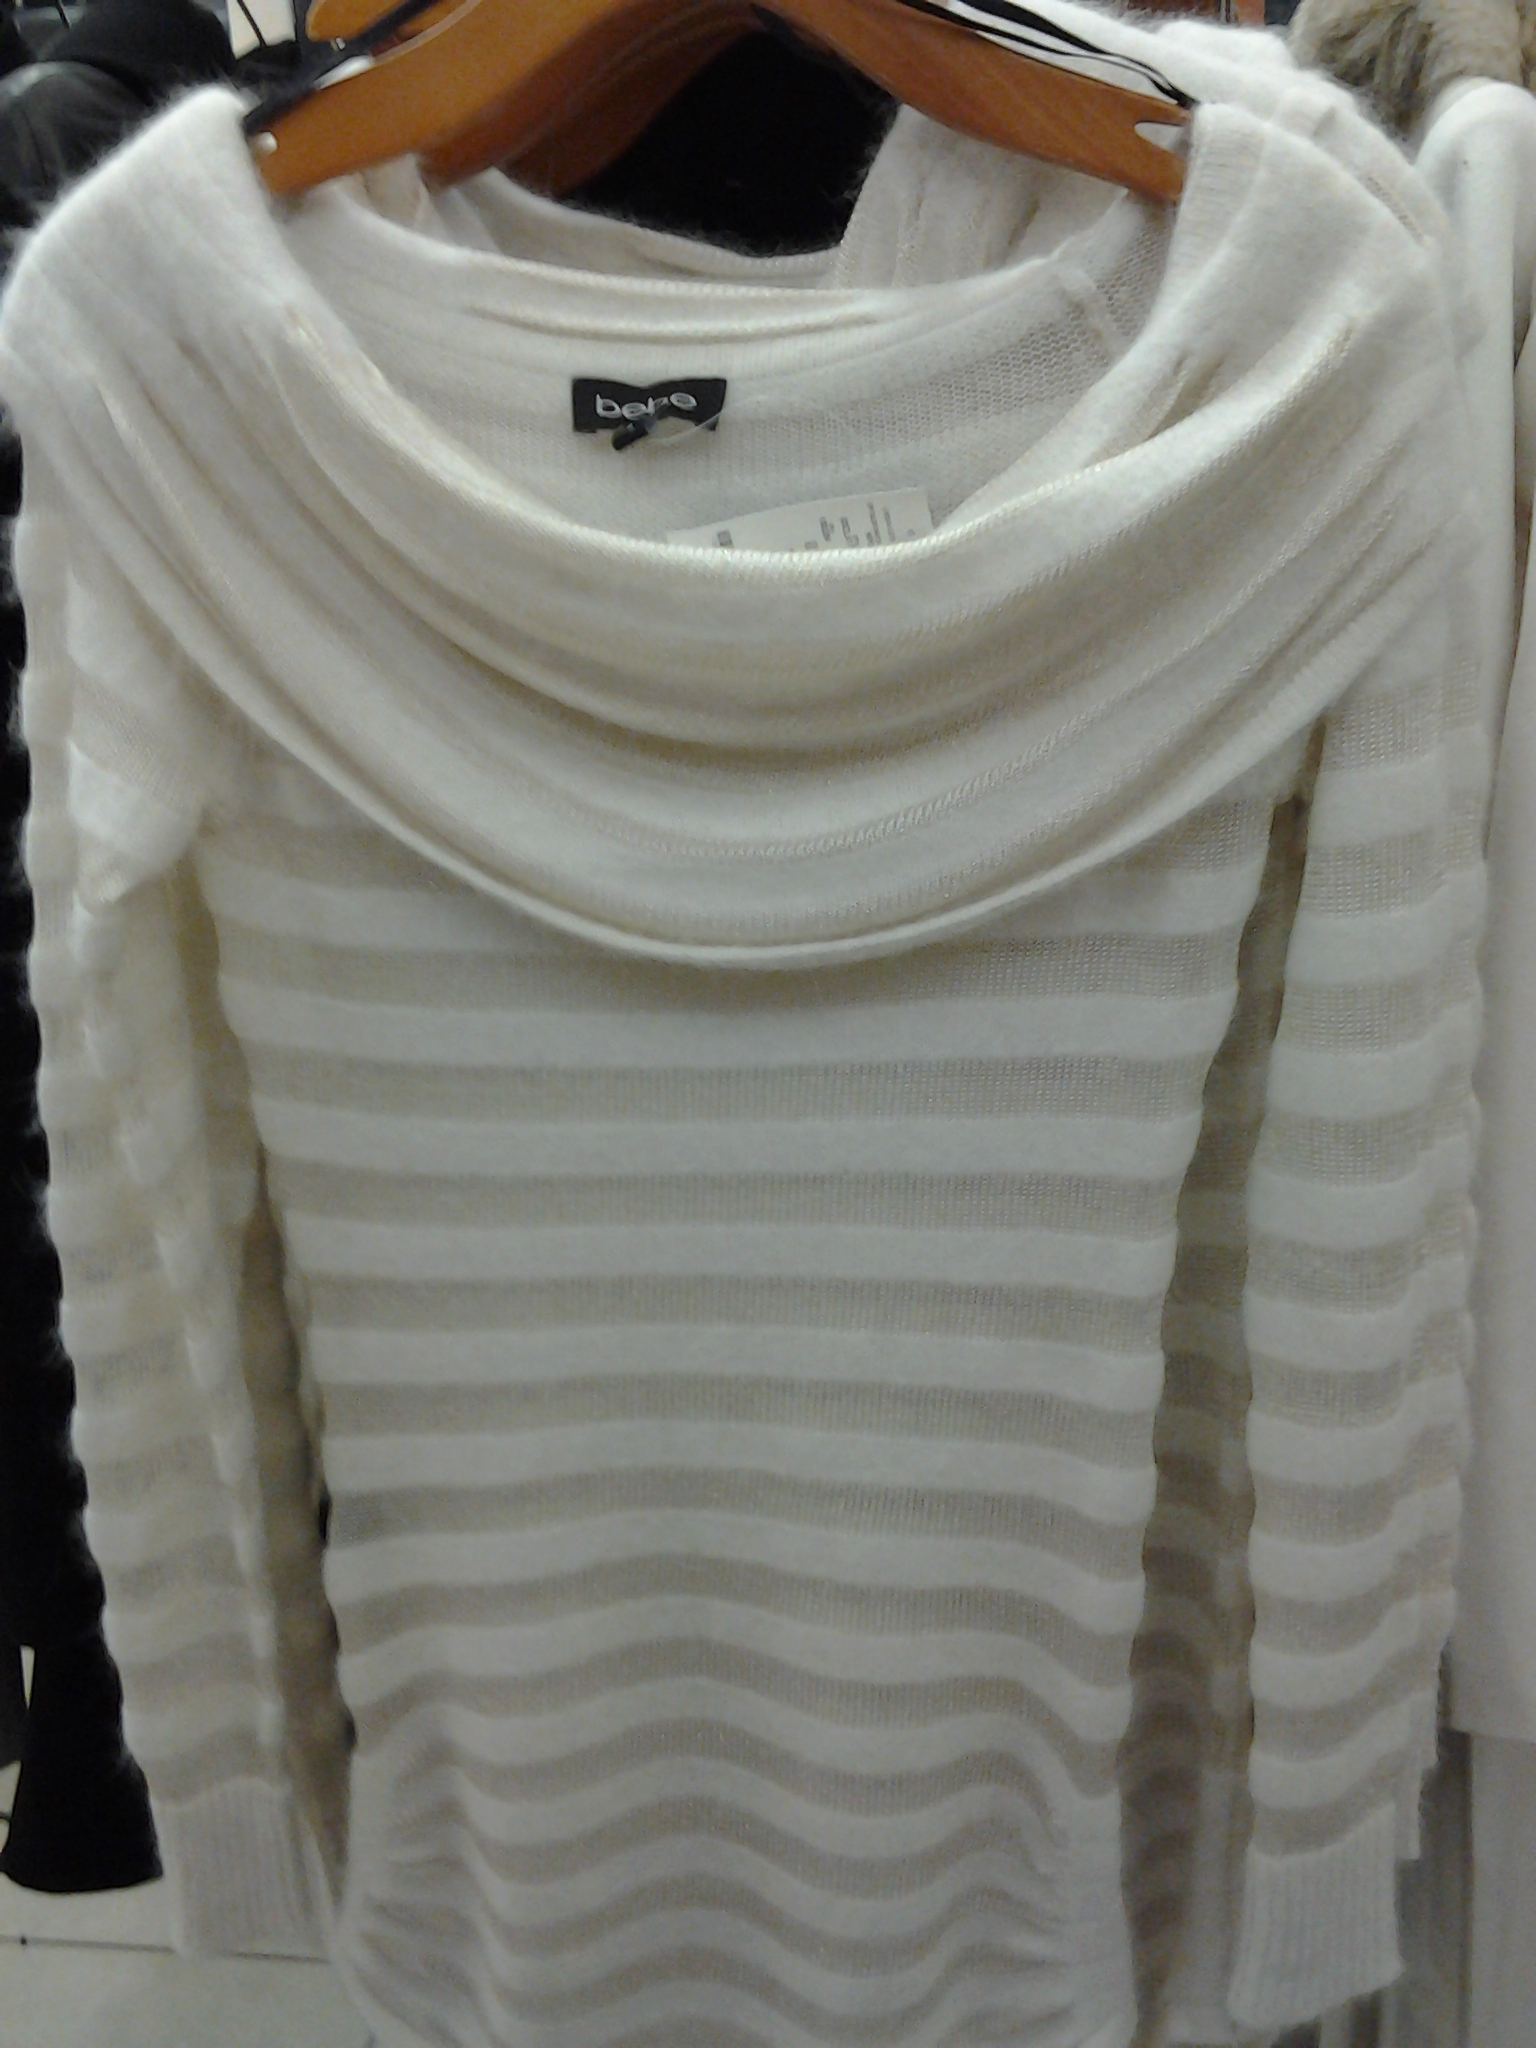 Dressy white sweater from Bebe